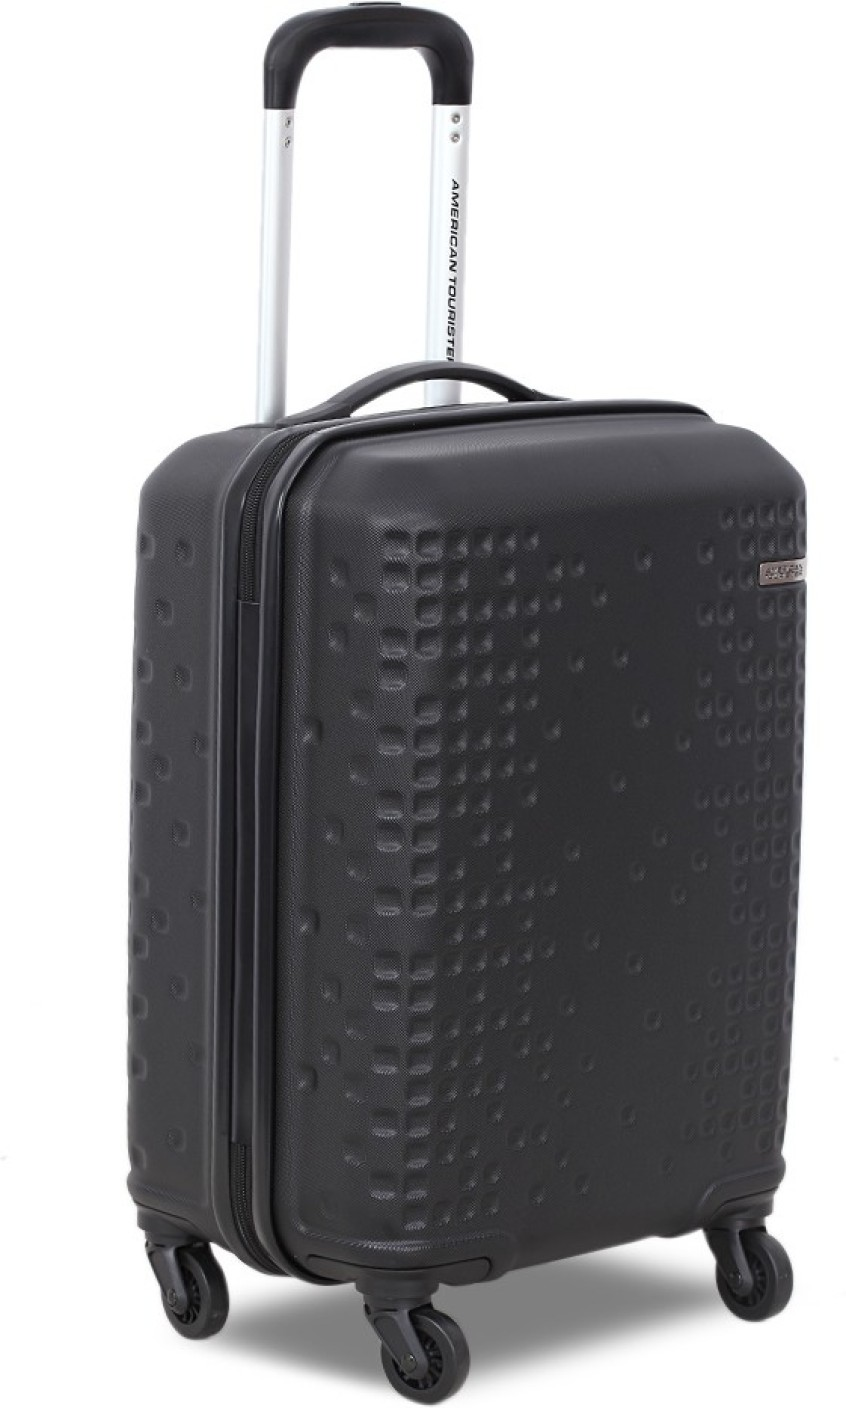 american tourister cruze cabin luggage 22 inch black price in india. Black Bedroom Furniture Sets. Home Design Ideas